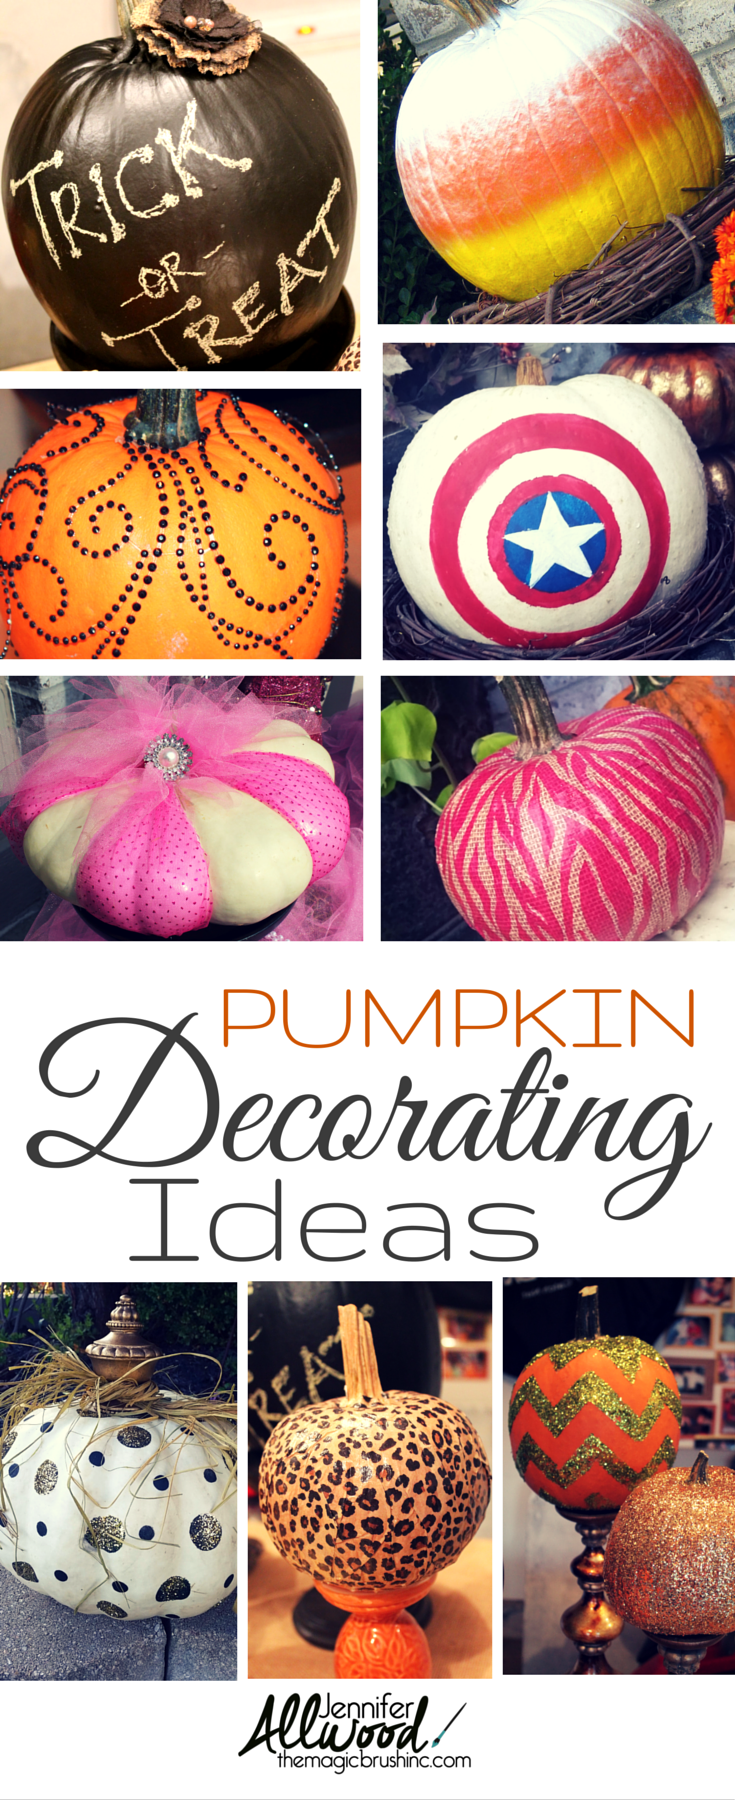 Ideas : Forget carving! There are tons of fun pumpkin decorating ideas for Halloween and fall at theMagicBrushinc.com